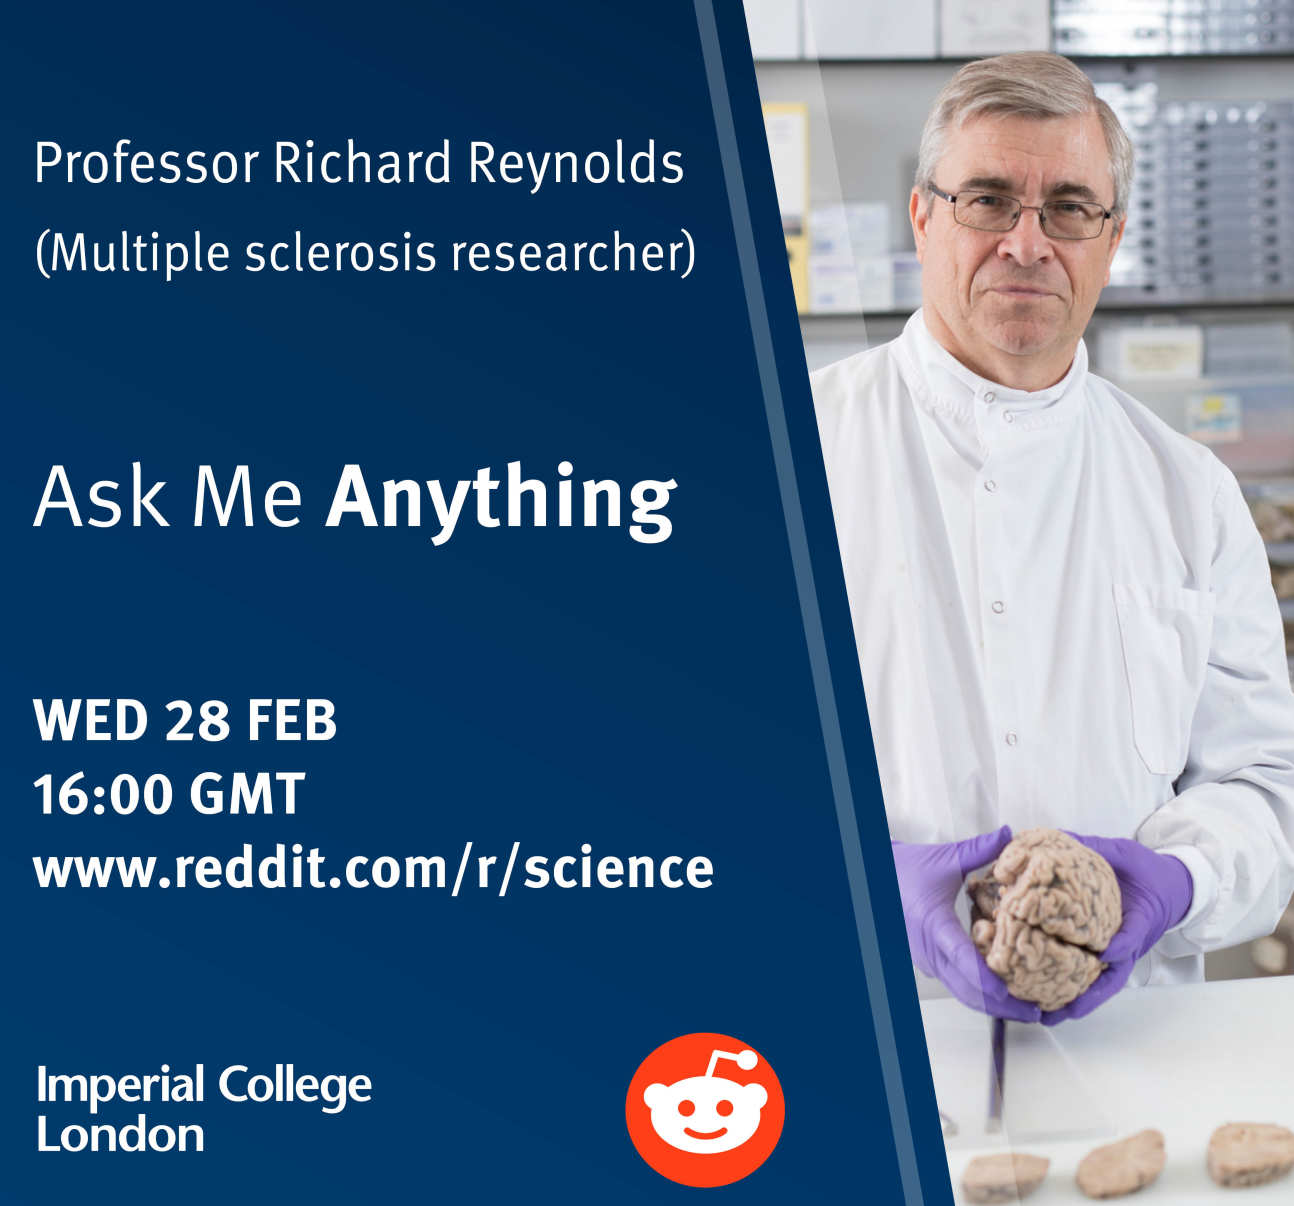 A poster publicising Professor Reynolds's live Q&A session